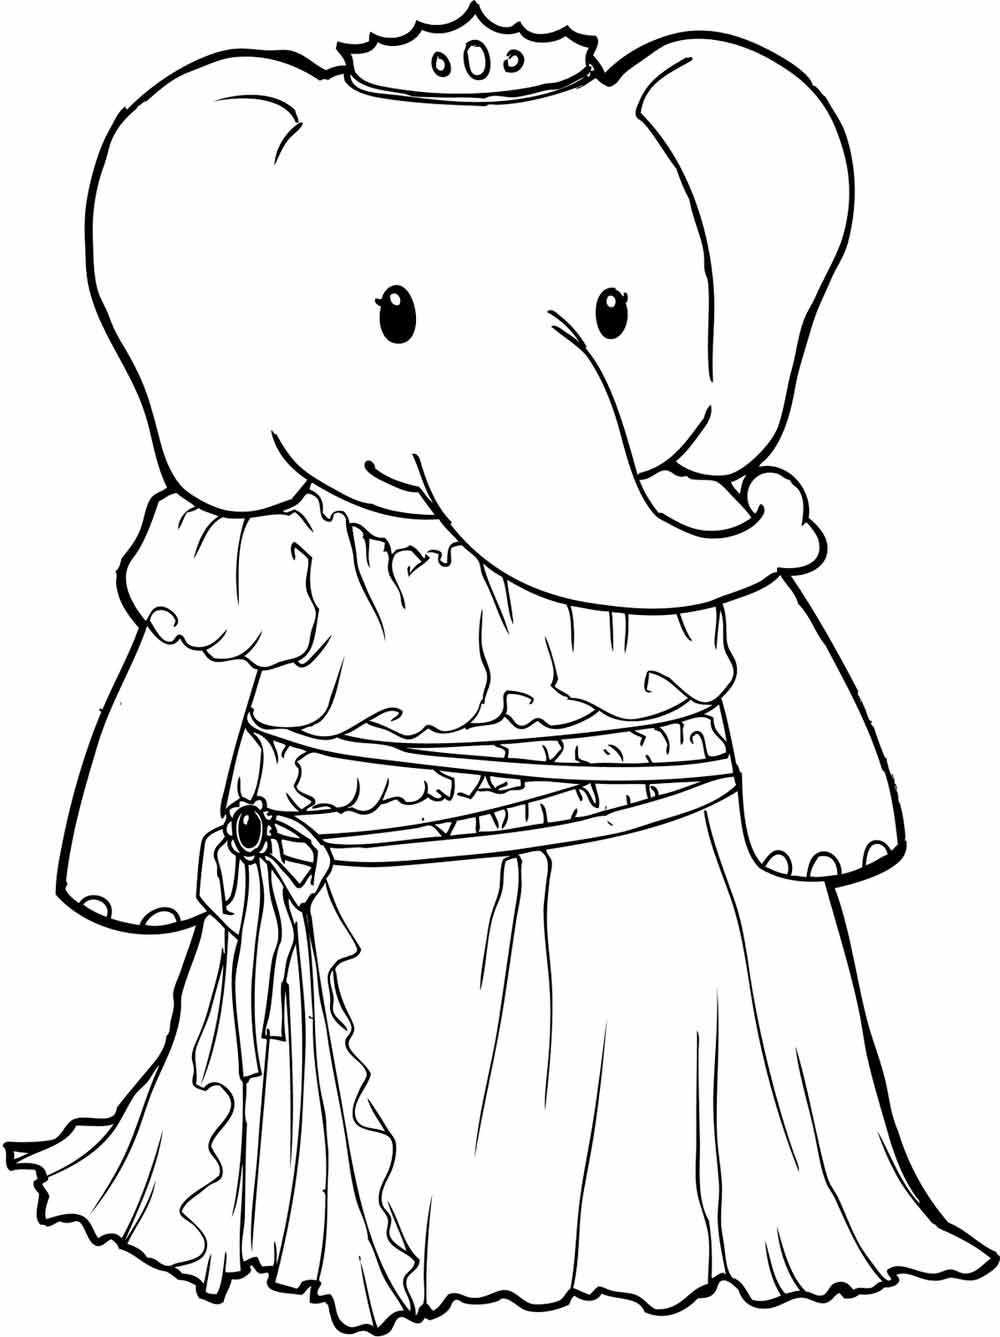 The Best Free Ella Coloring Page Images Download From 47 Free